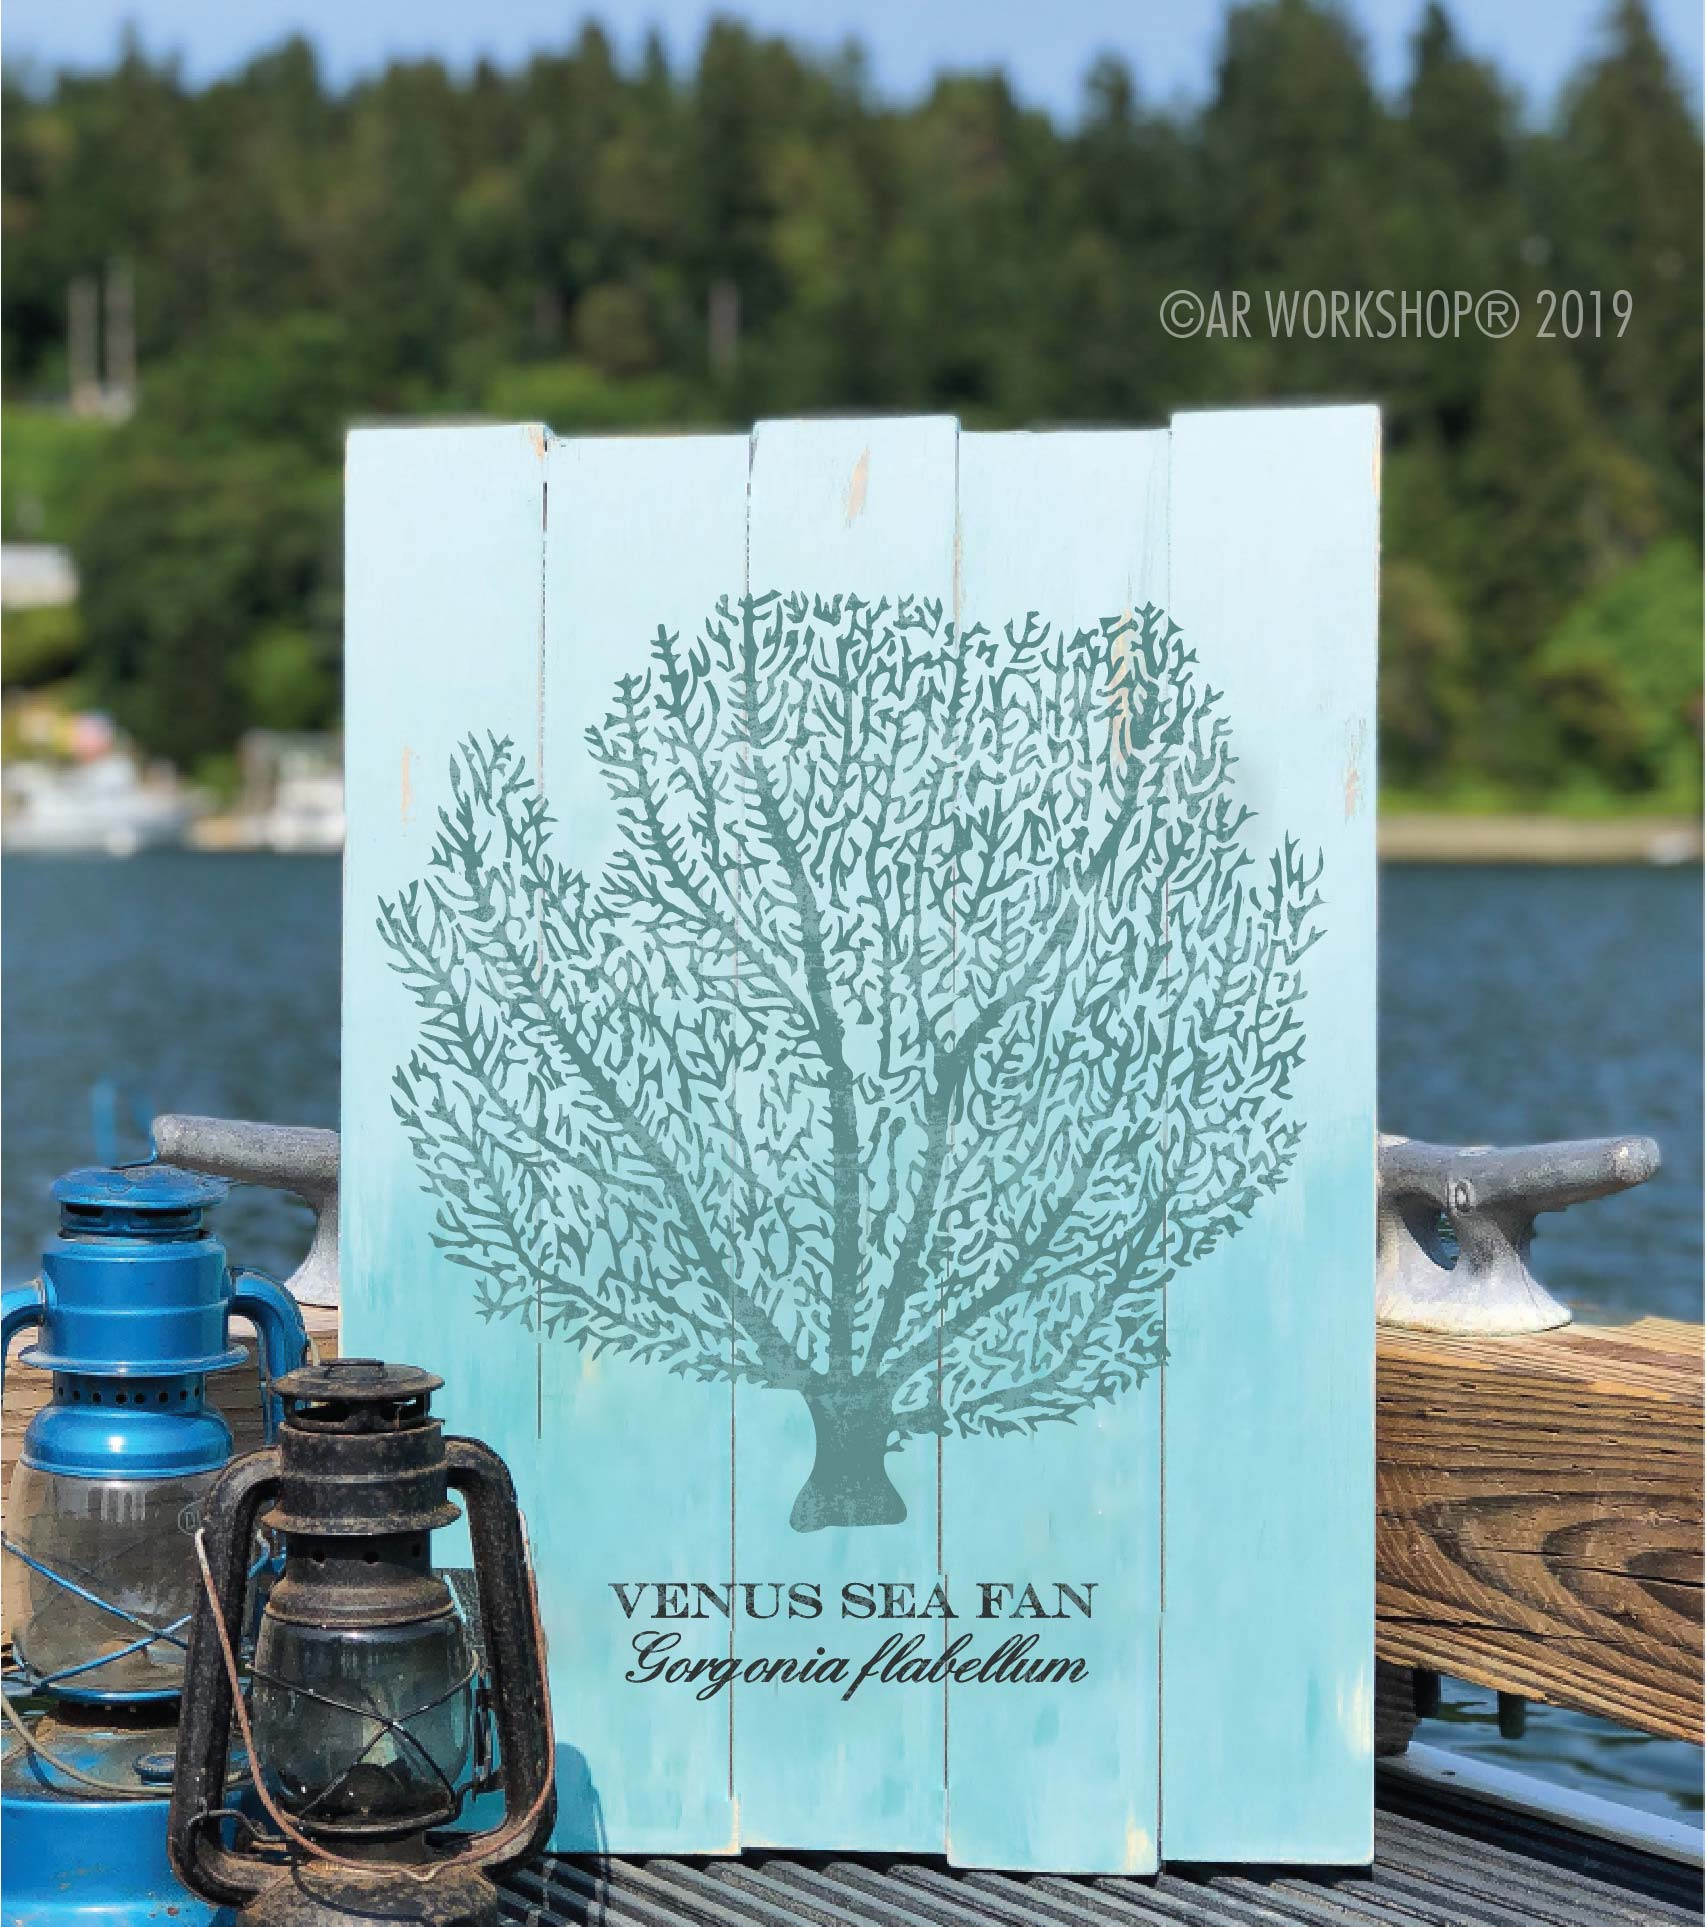 venus sea fan plank sign 17.5x24